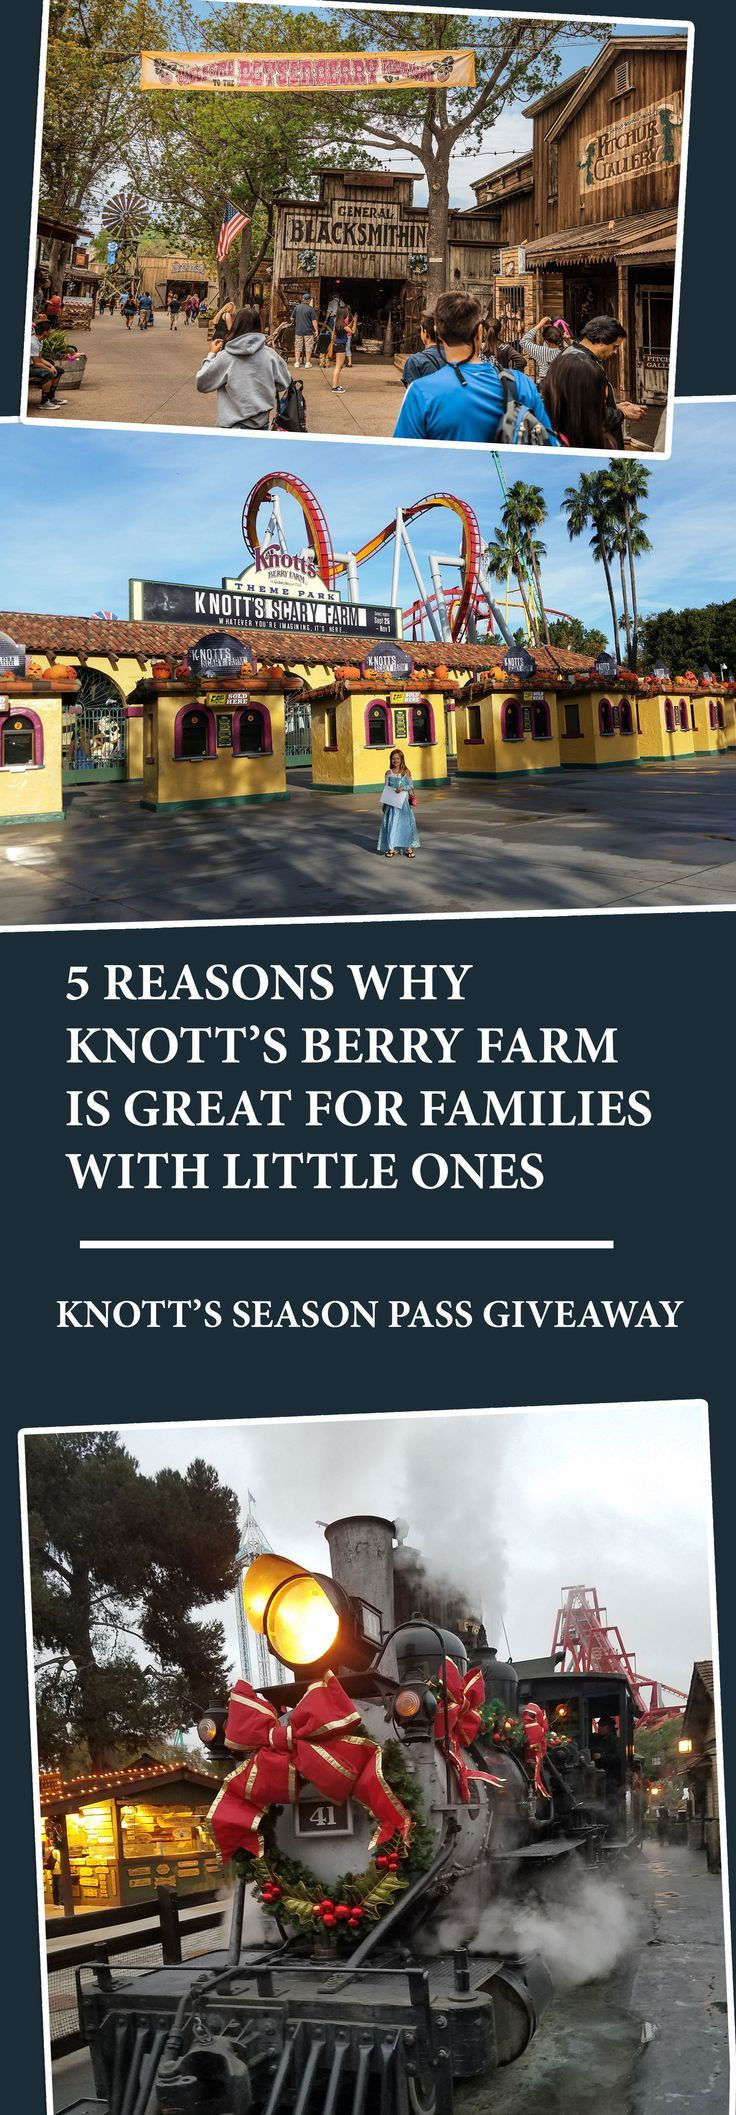 5 reasons why Knott's Berry Farm is great for Families with little ones!  A Knott's 2017 season pass giveaway!